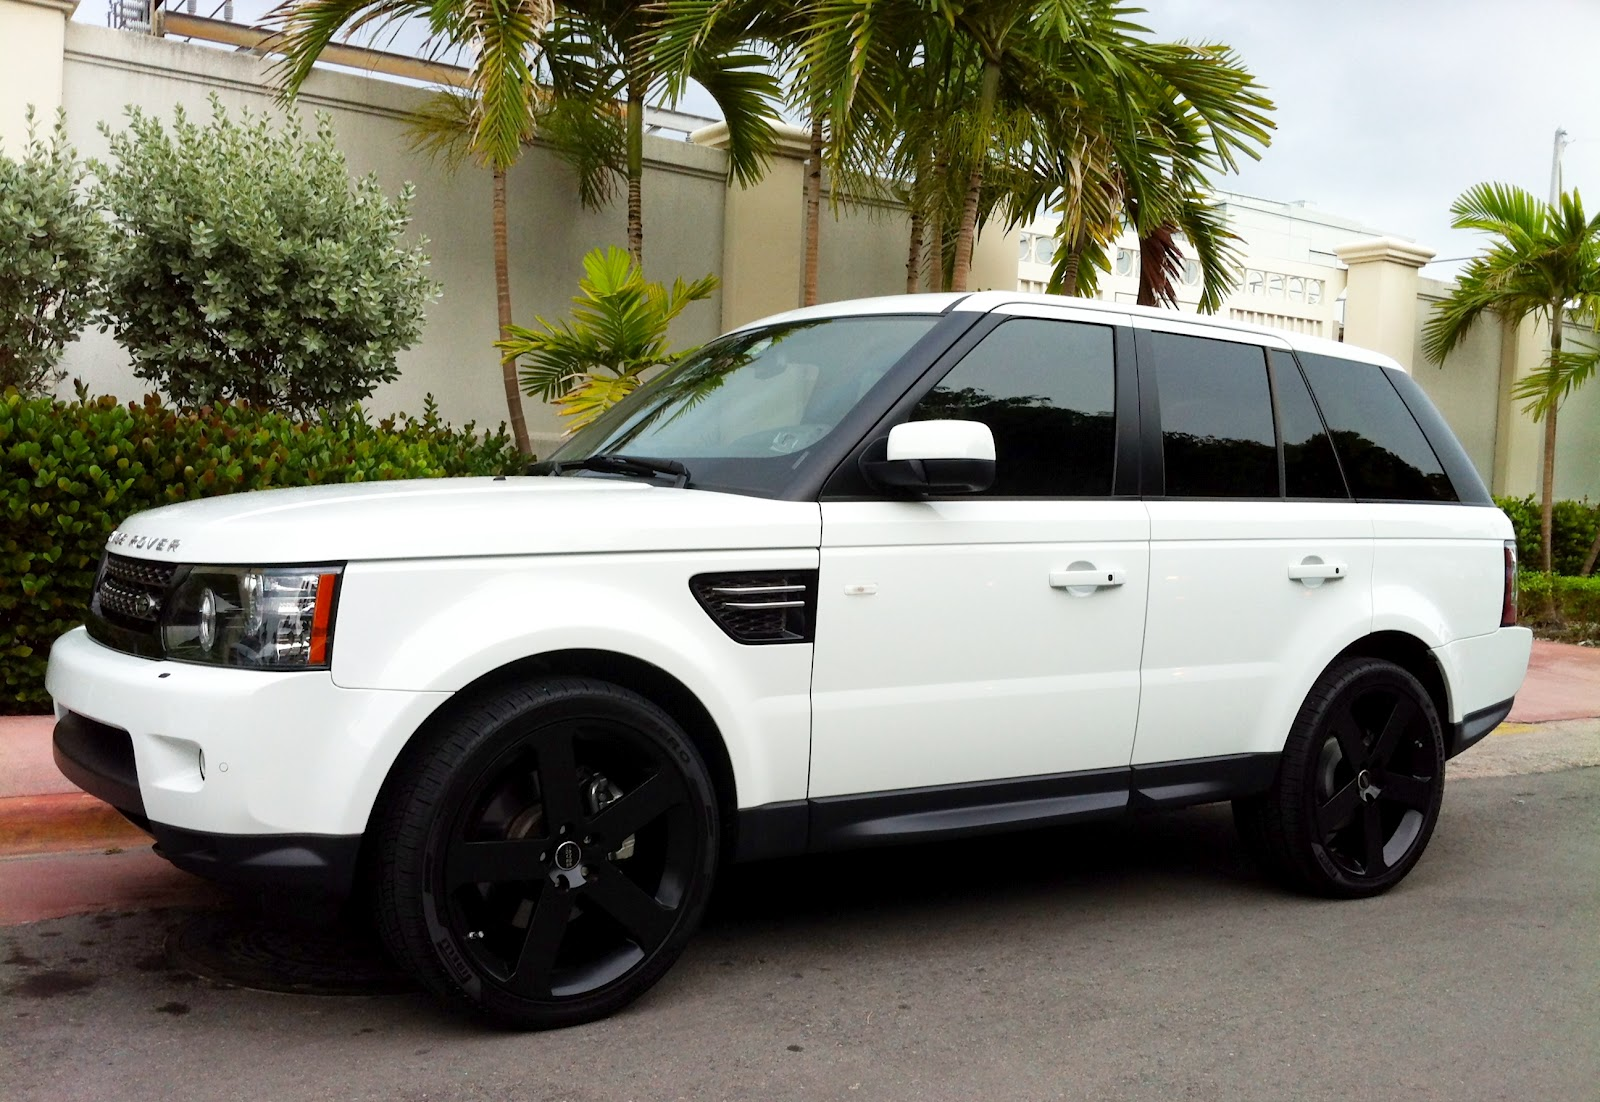 White Range Rover Sport Supercharged with black rims